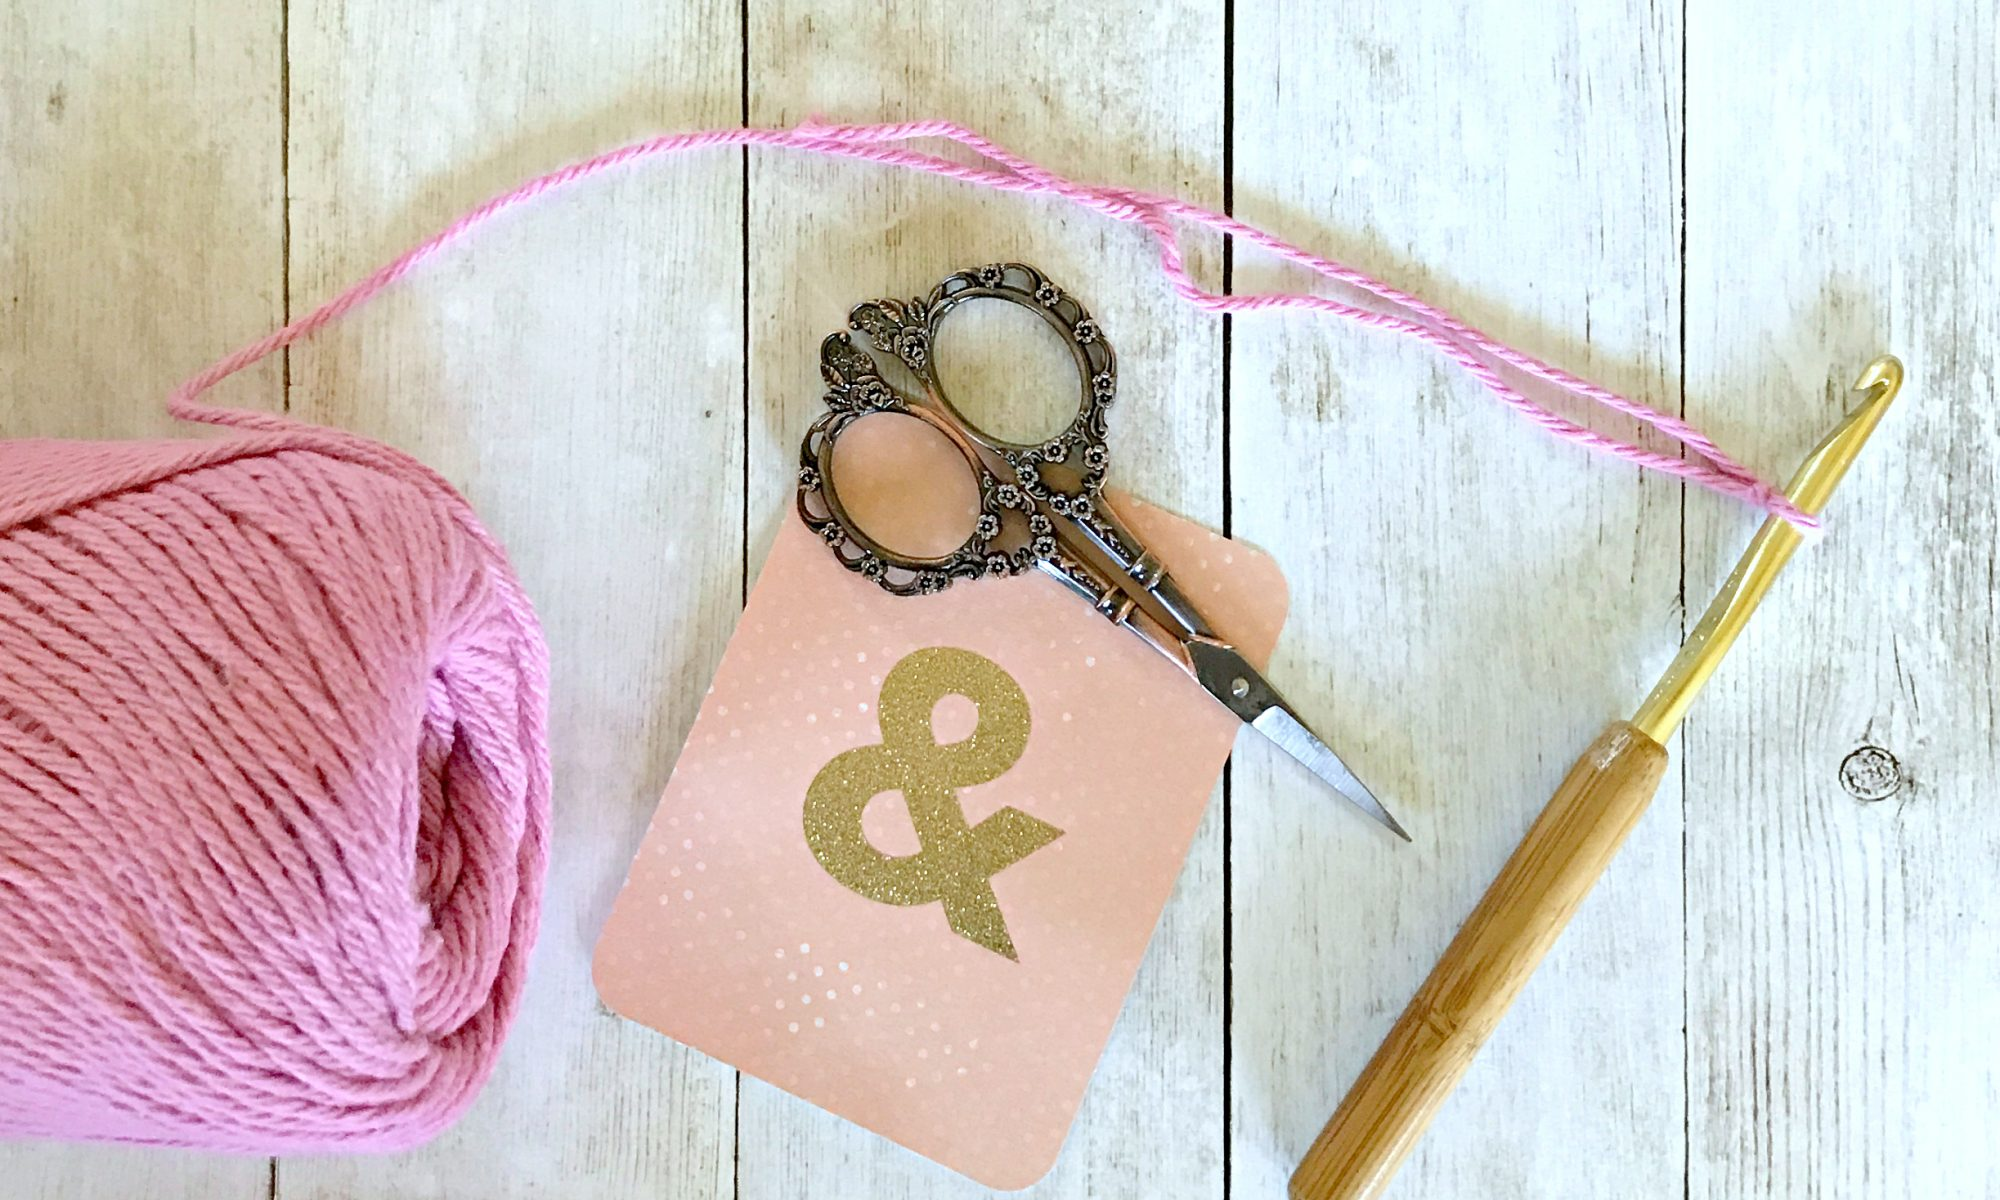 yarn scissors crochet hook